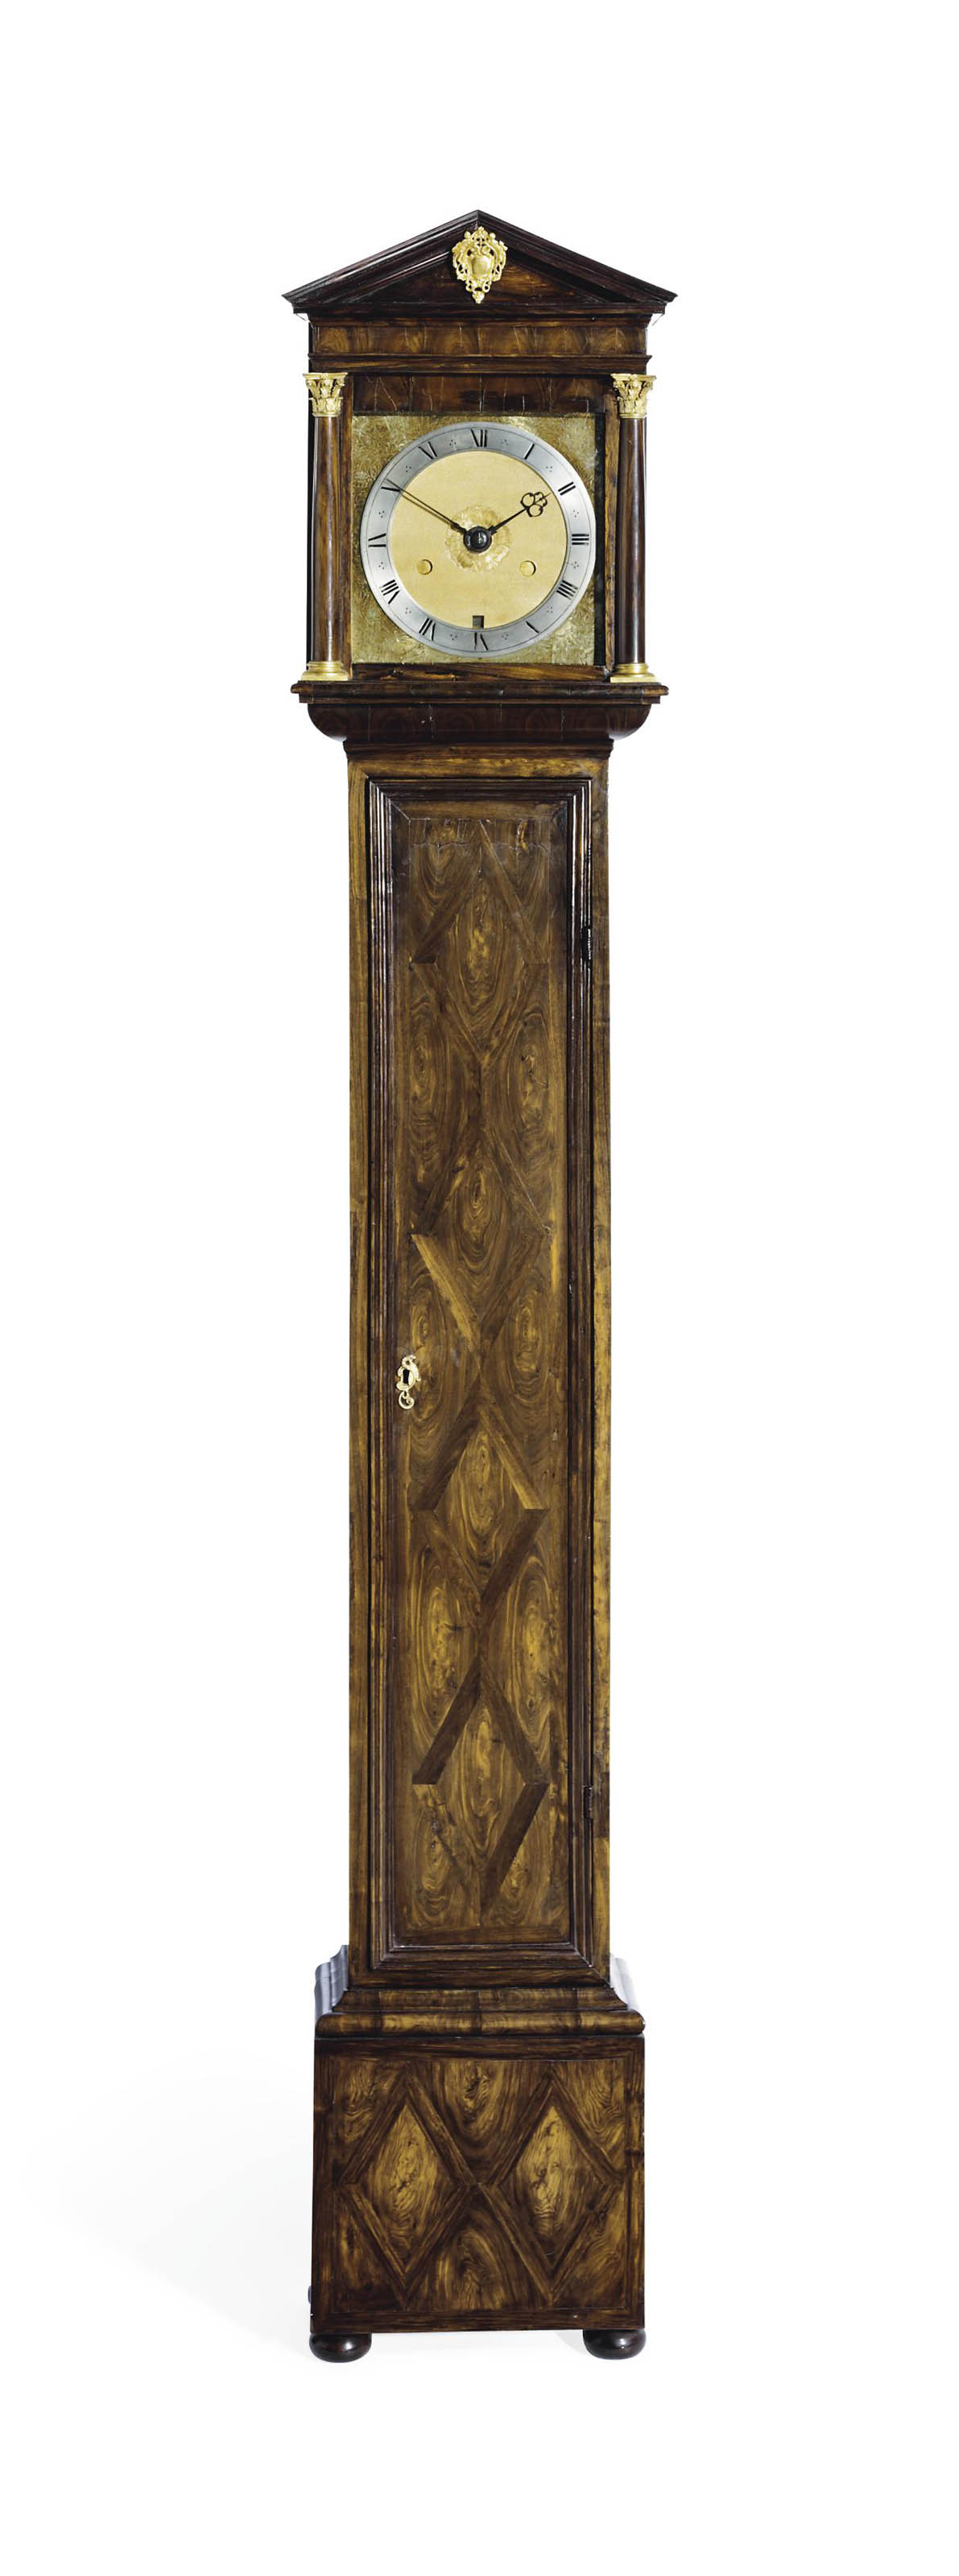 A CHARLES II SMALL LABURNUM OYSTER VENEERED ARCHITECTURAL STRIKING EIGHT-DAY LONGCASE CLOCK